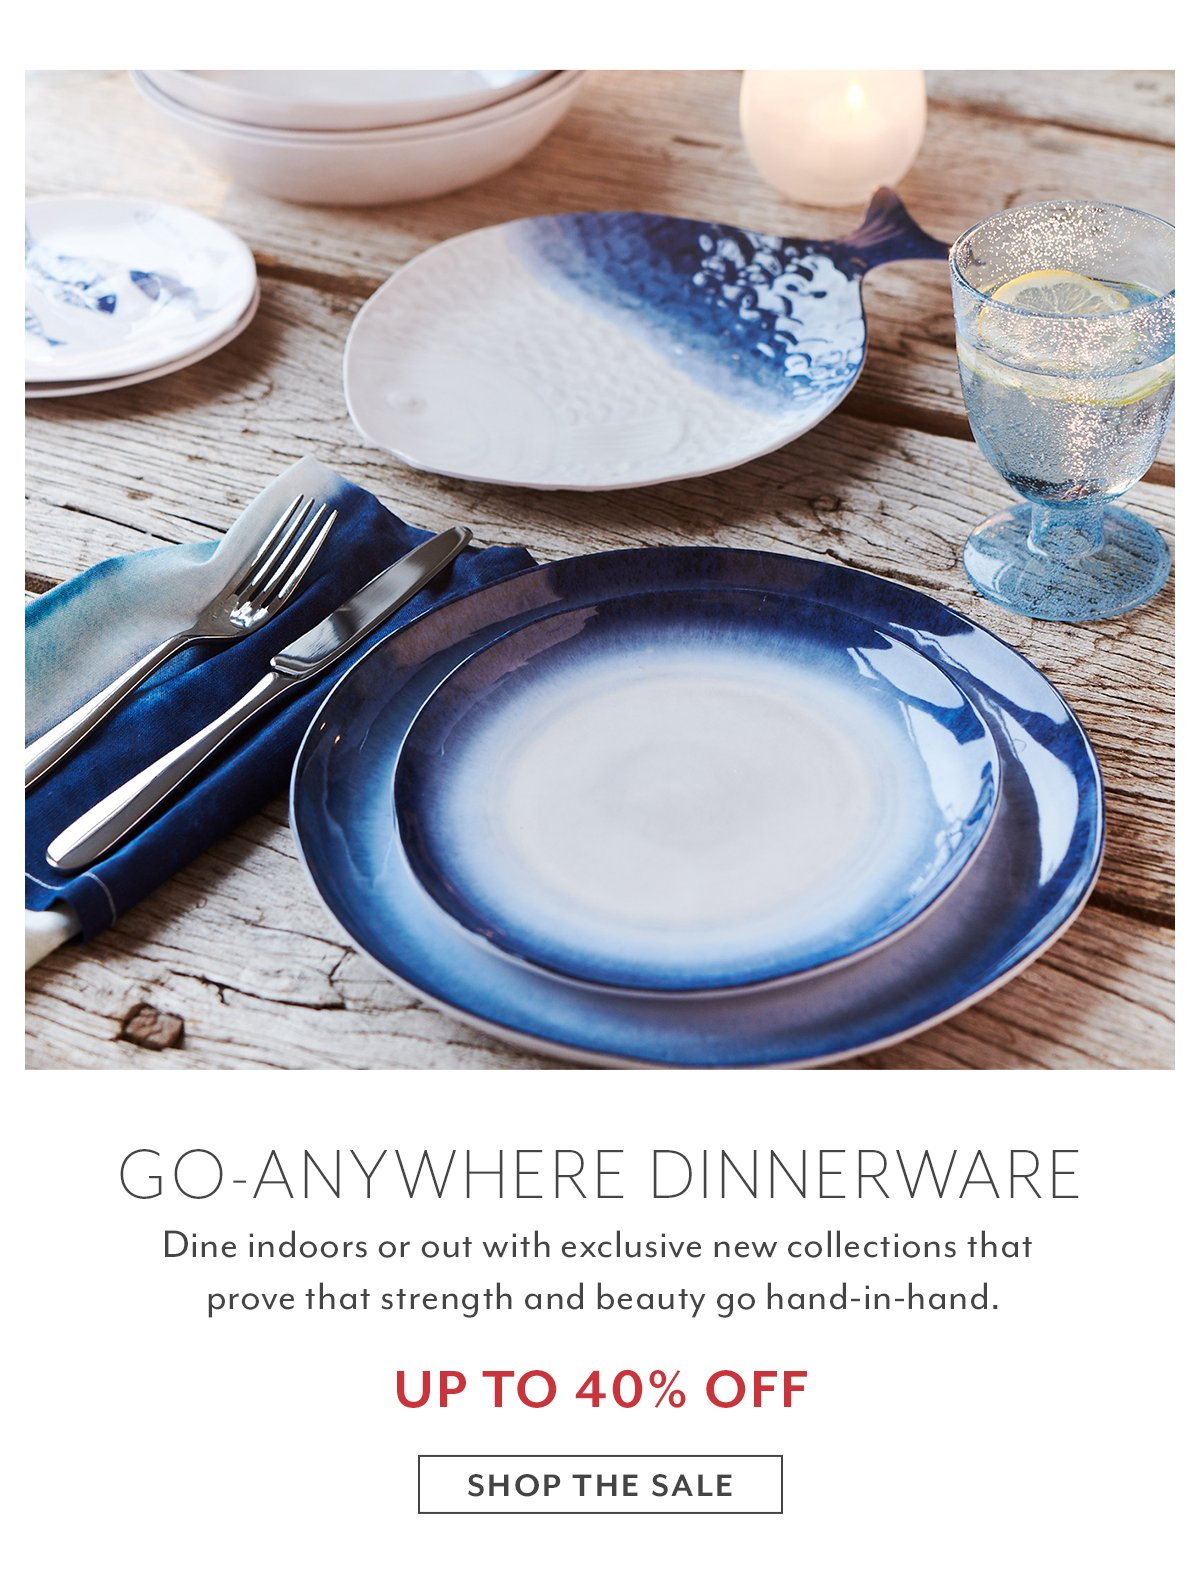 Go-Anywhere Dinnerware